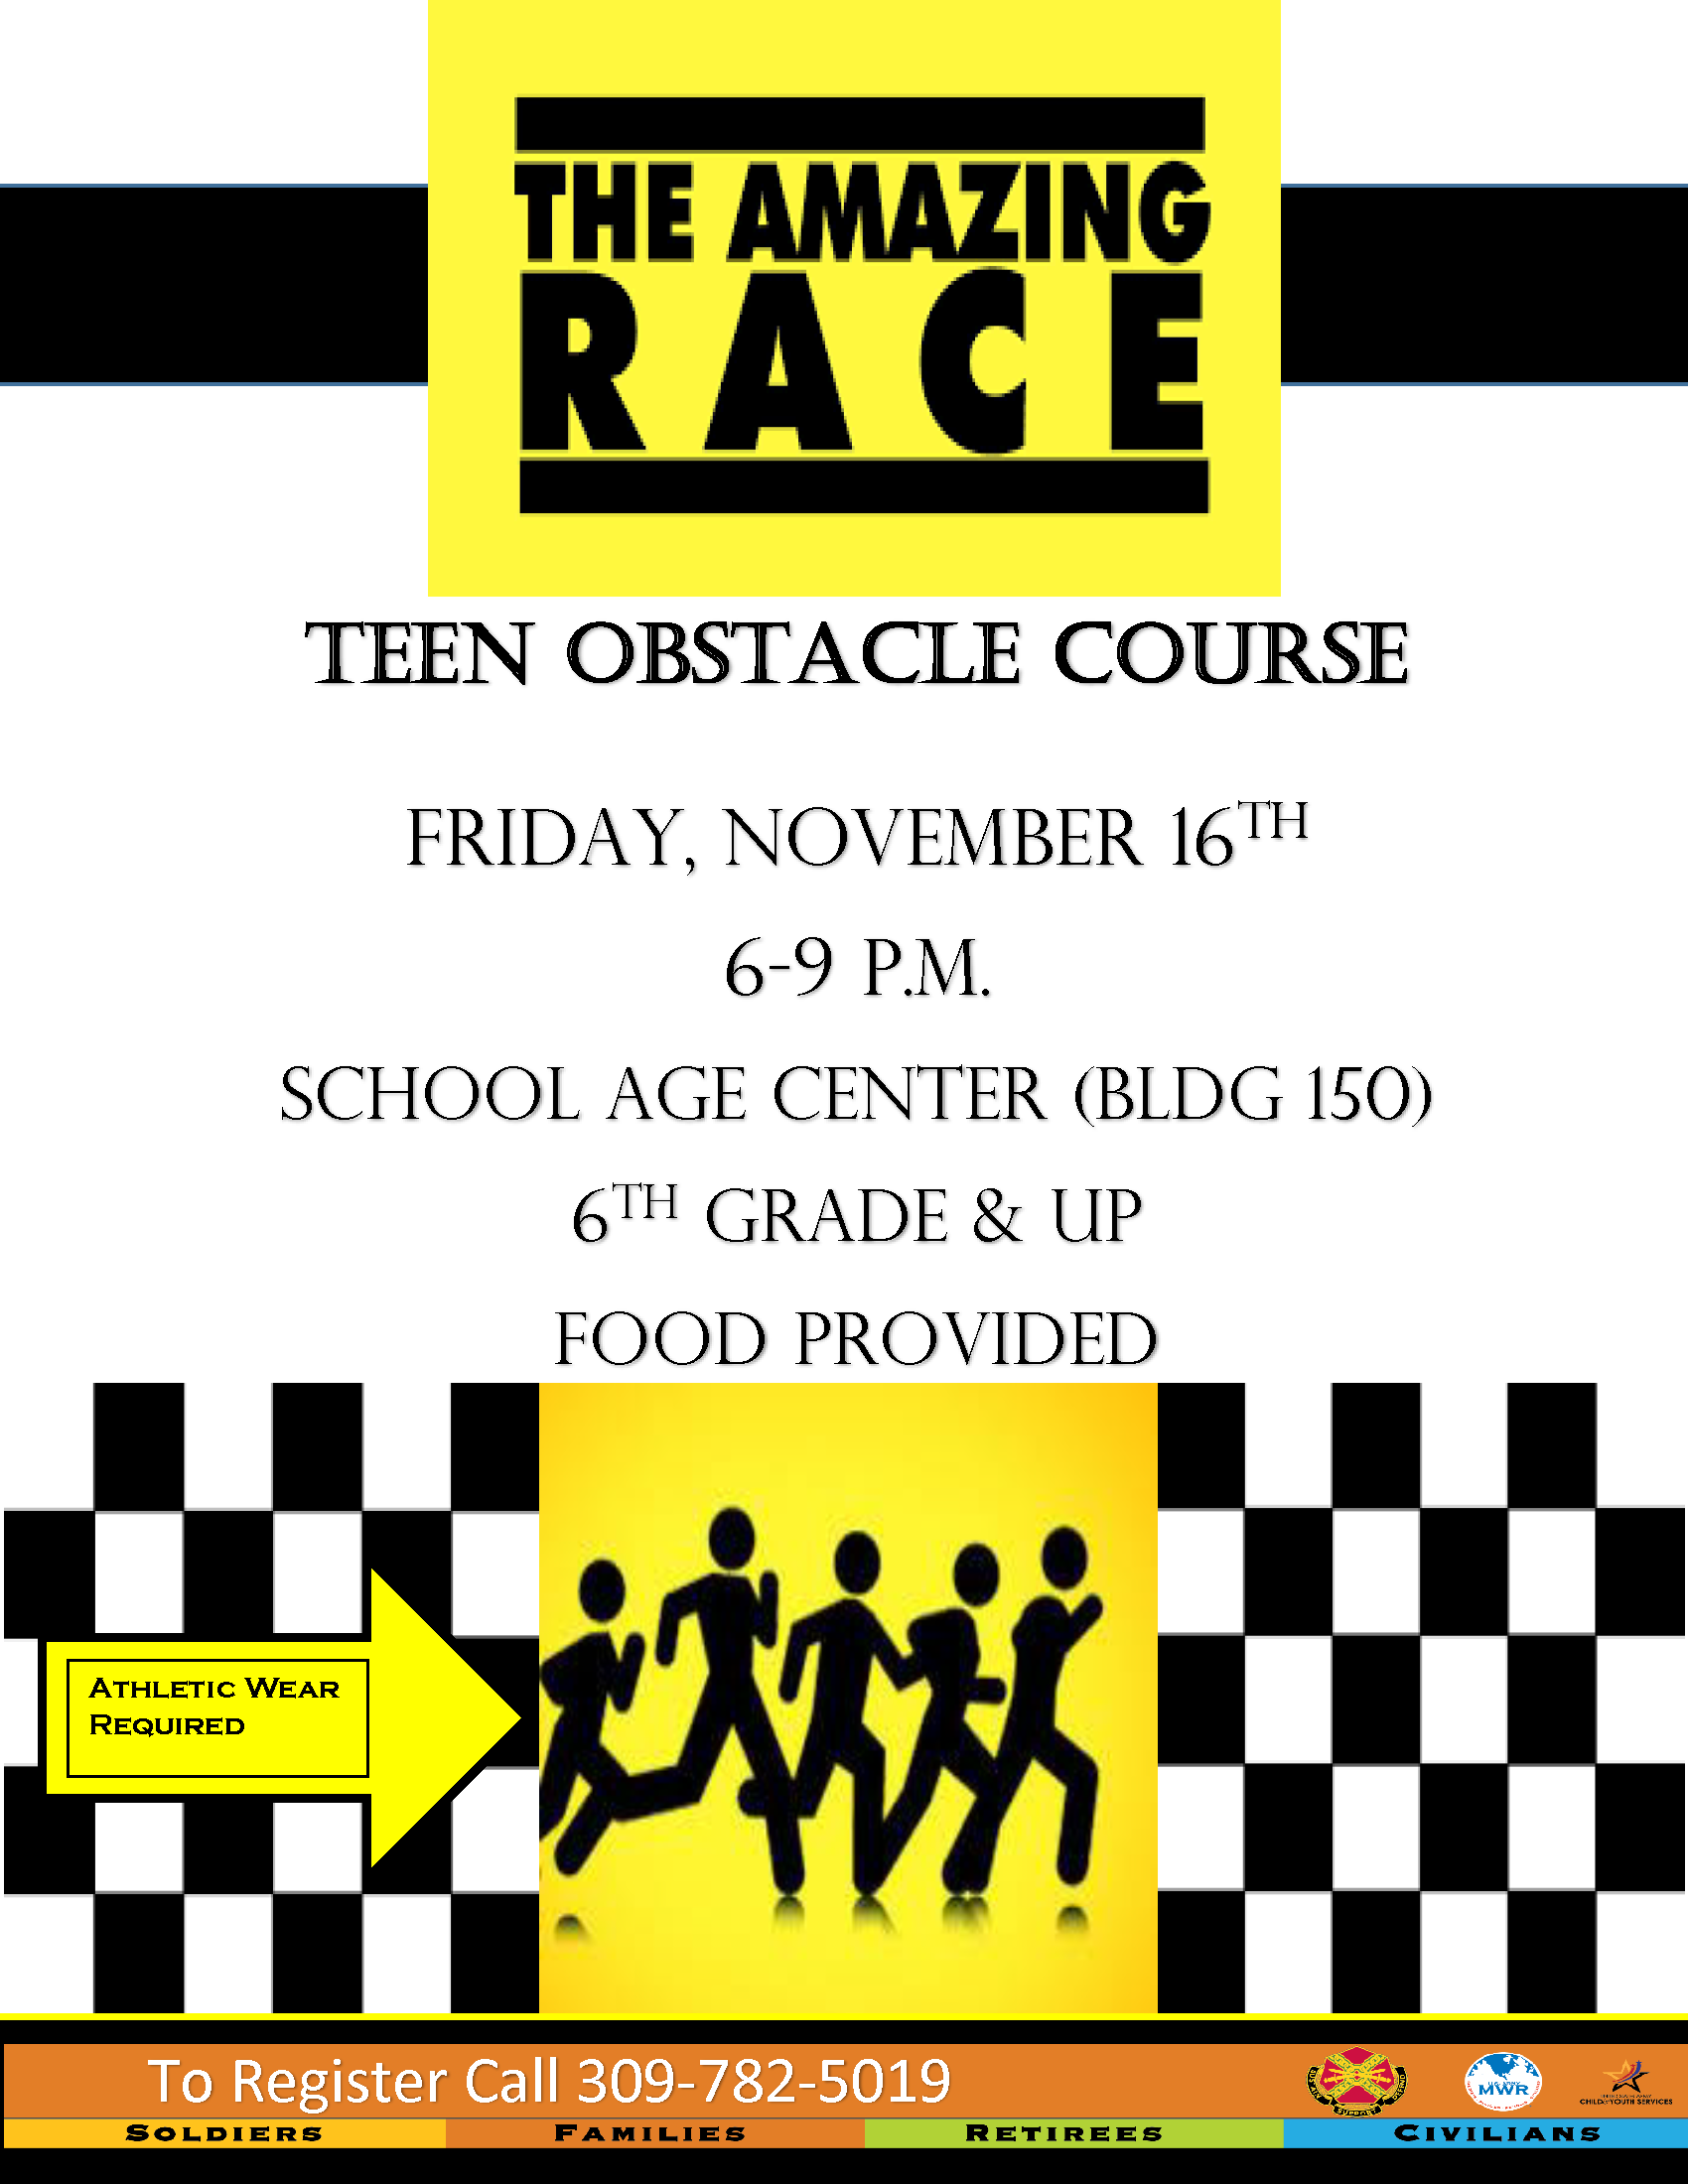 The Amazing Race Teen Obstacle Course